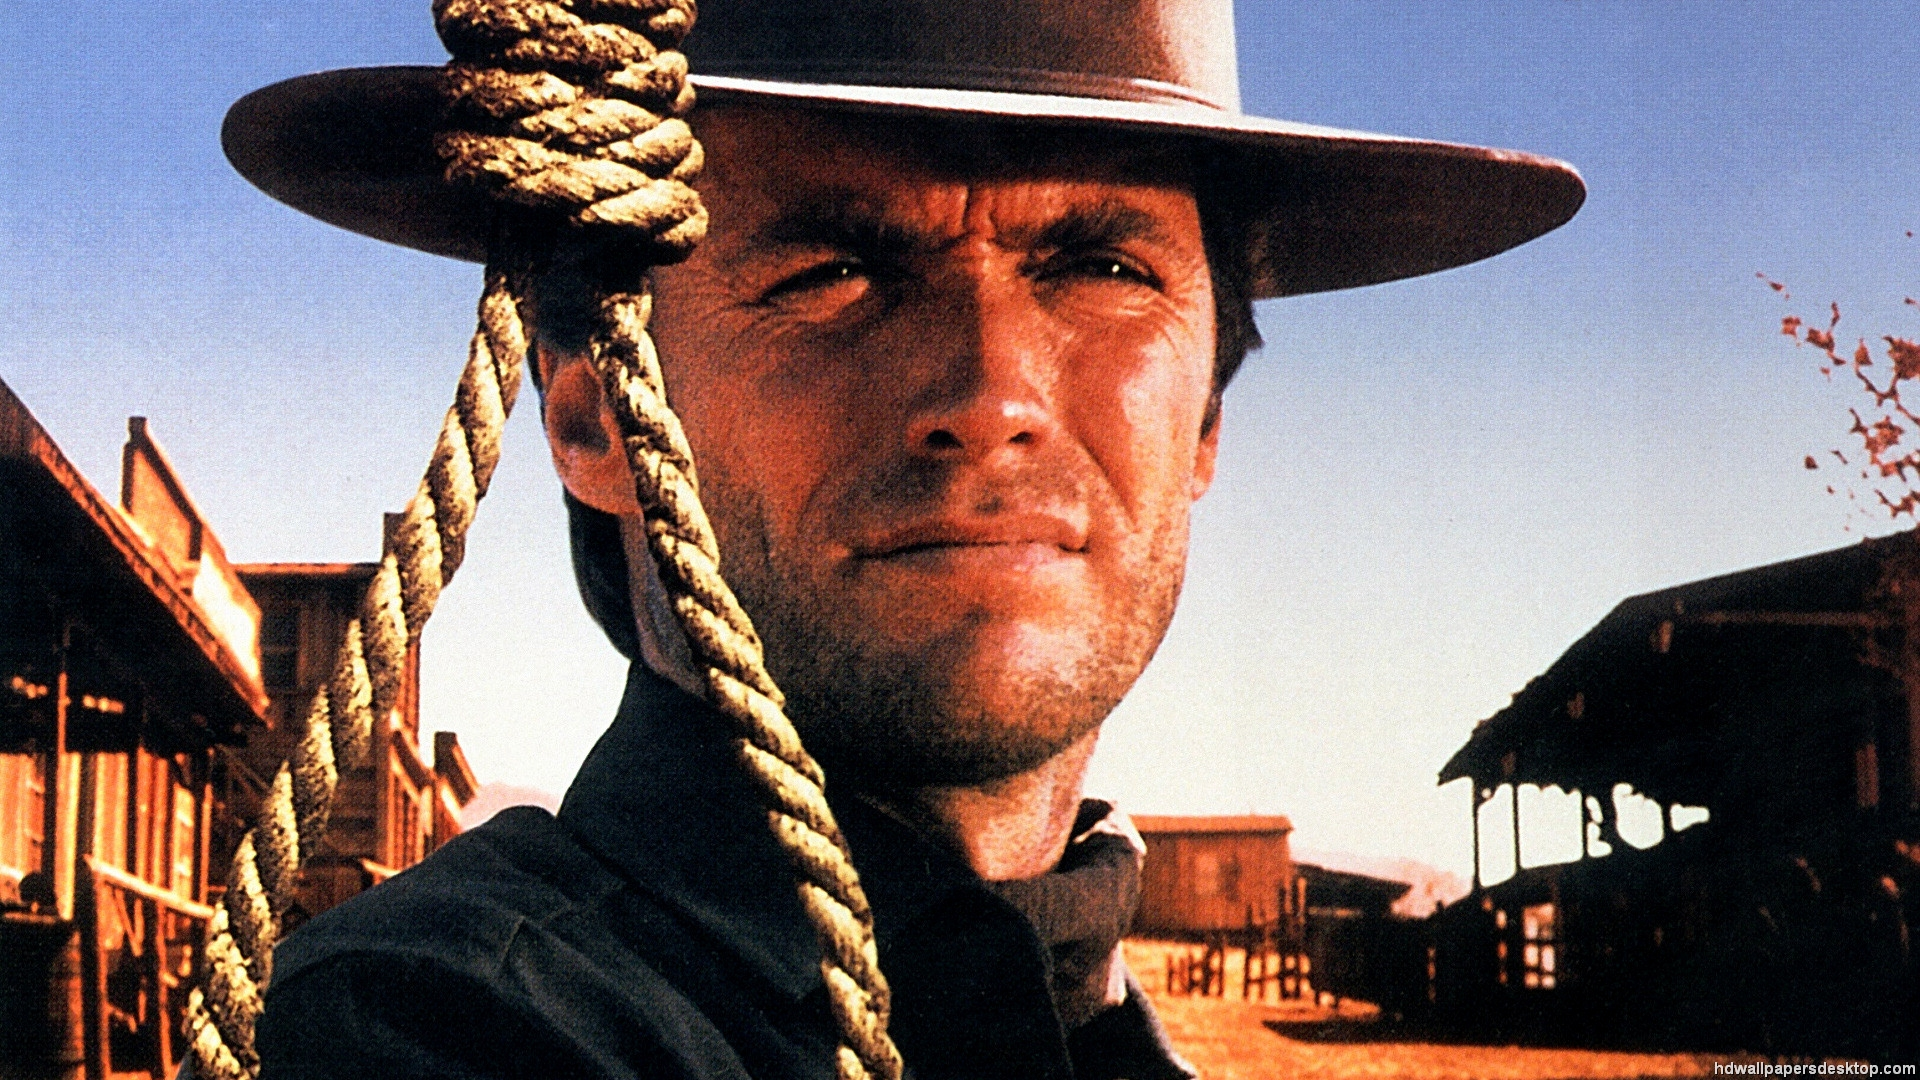 Clint Eastwood Cowboy Wallpaper: Clint Eastwood Wallpapers High Resolution And Quality Download